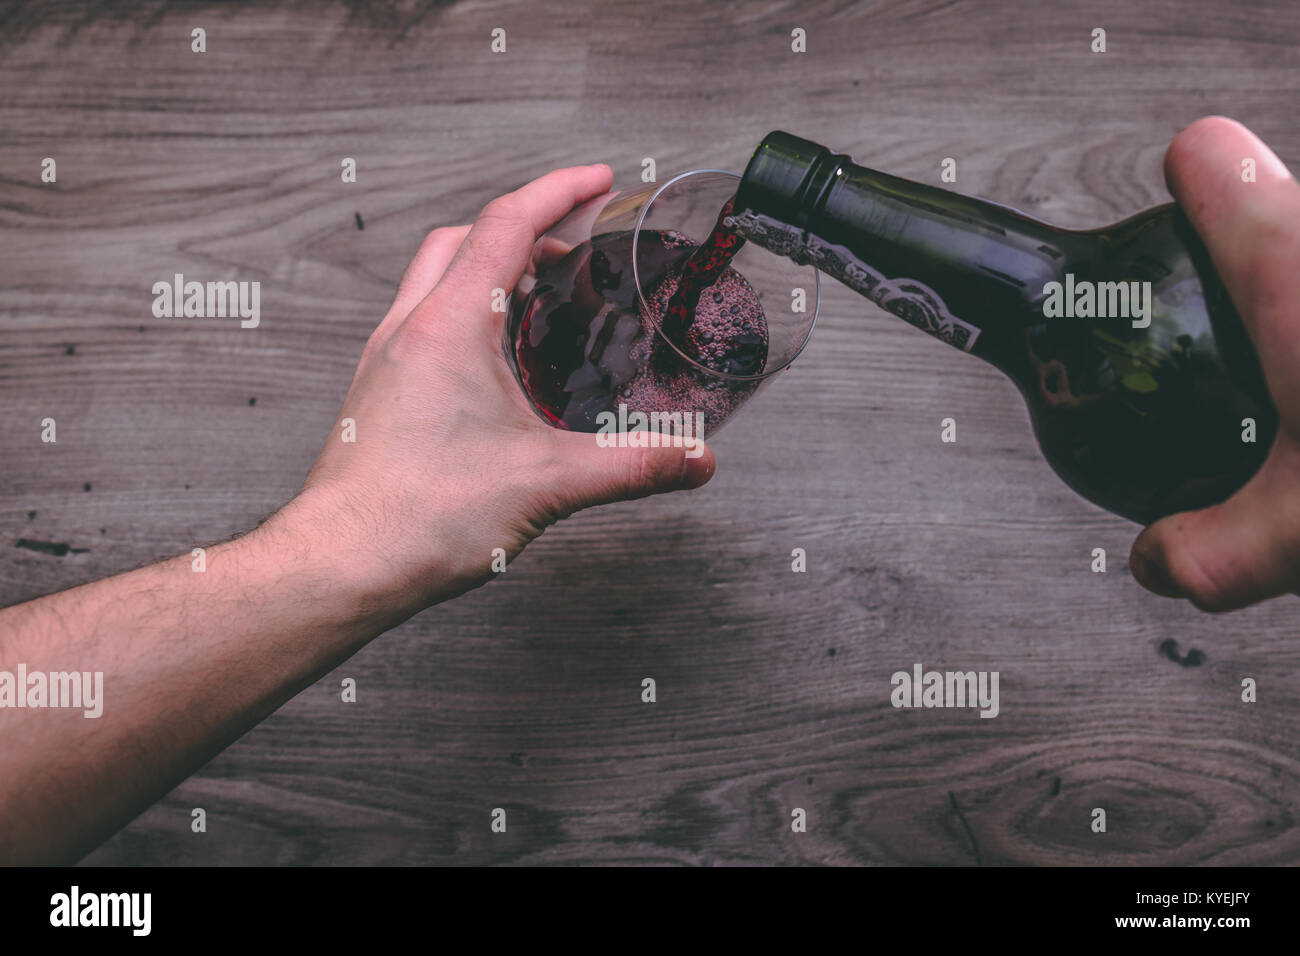 View from the top of one hand holding a red wine bottle and pouring it into a glass - Stock Image